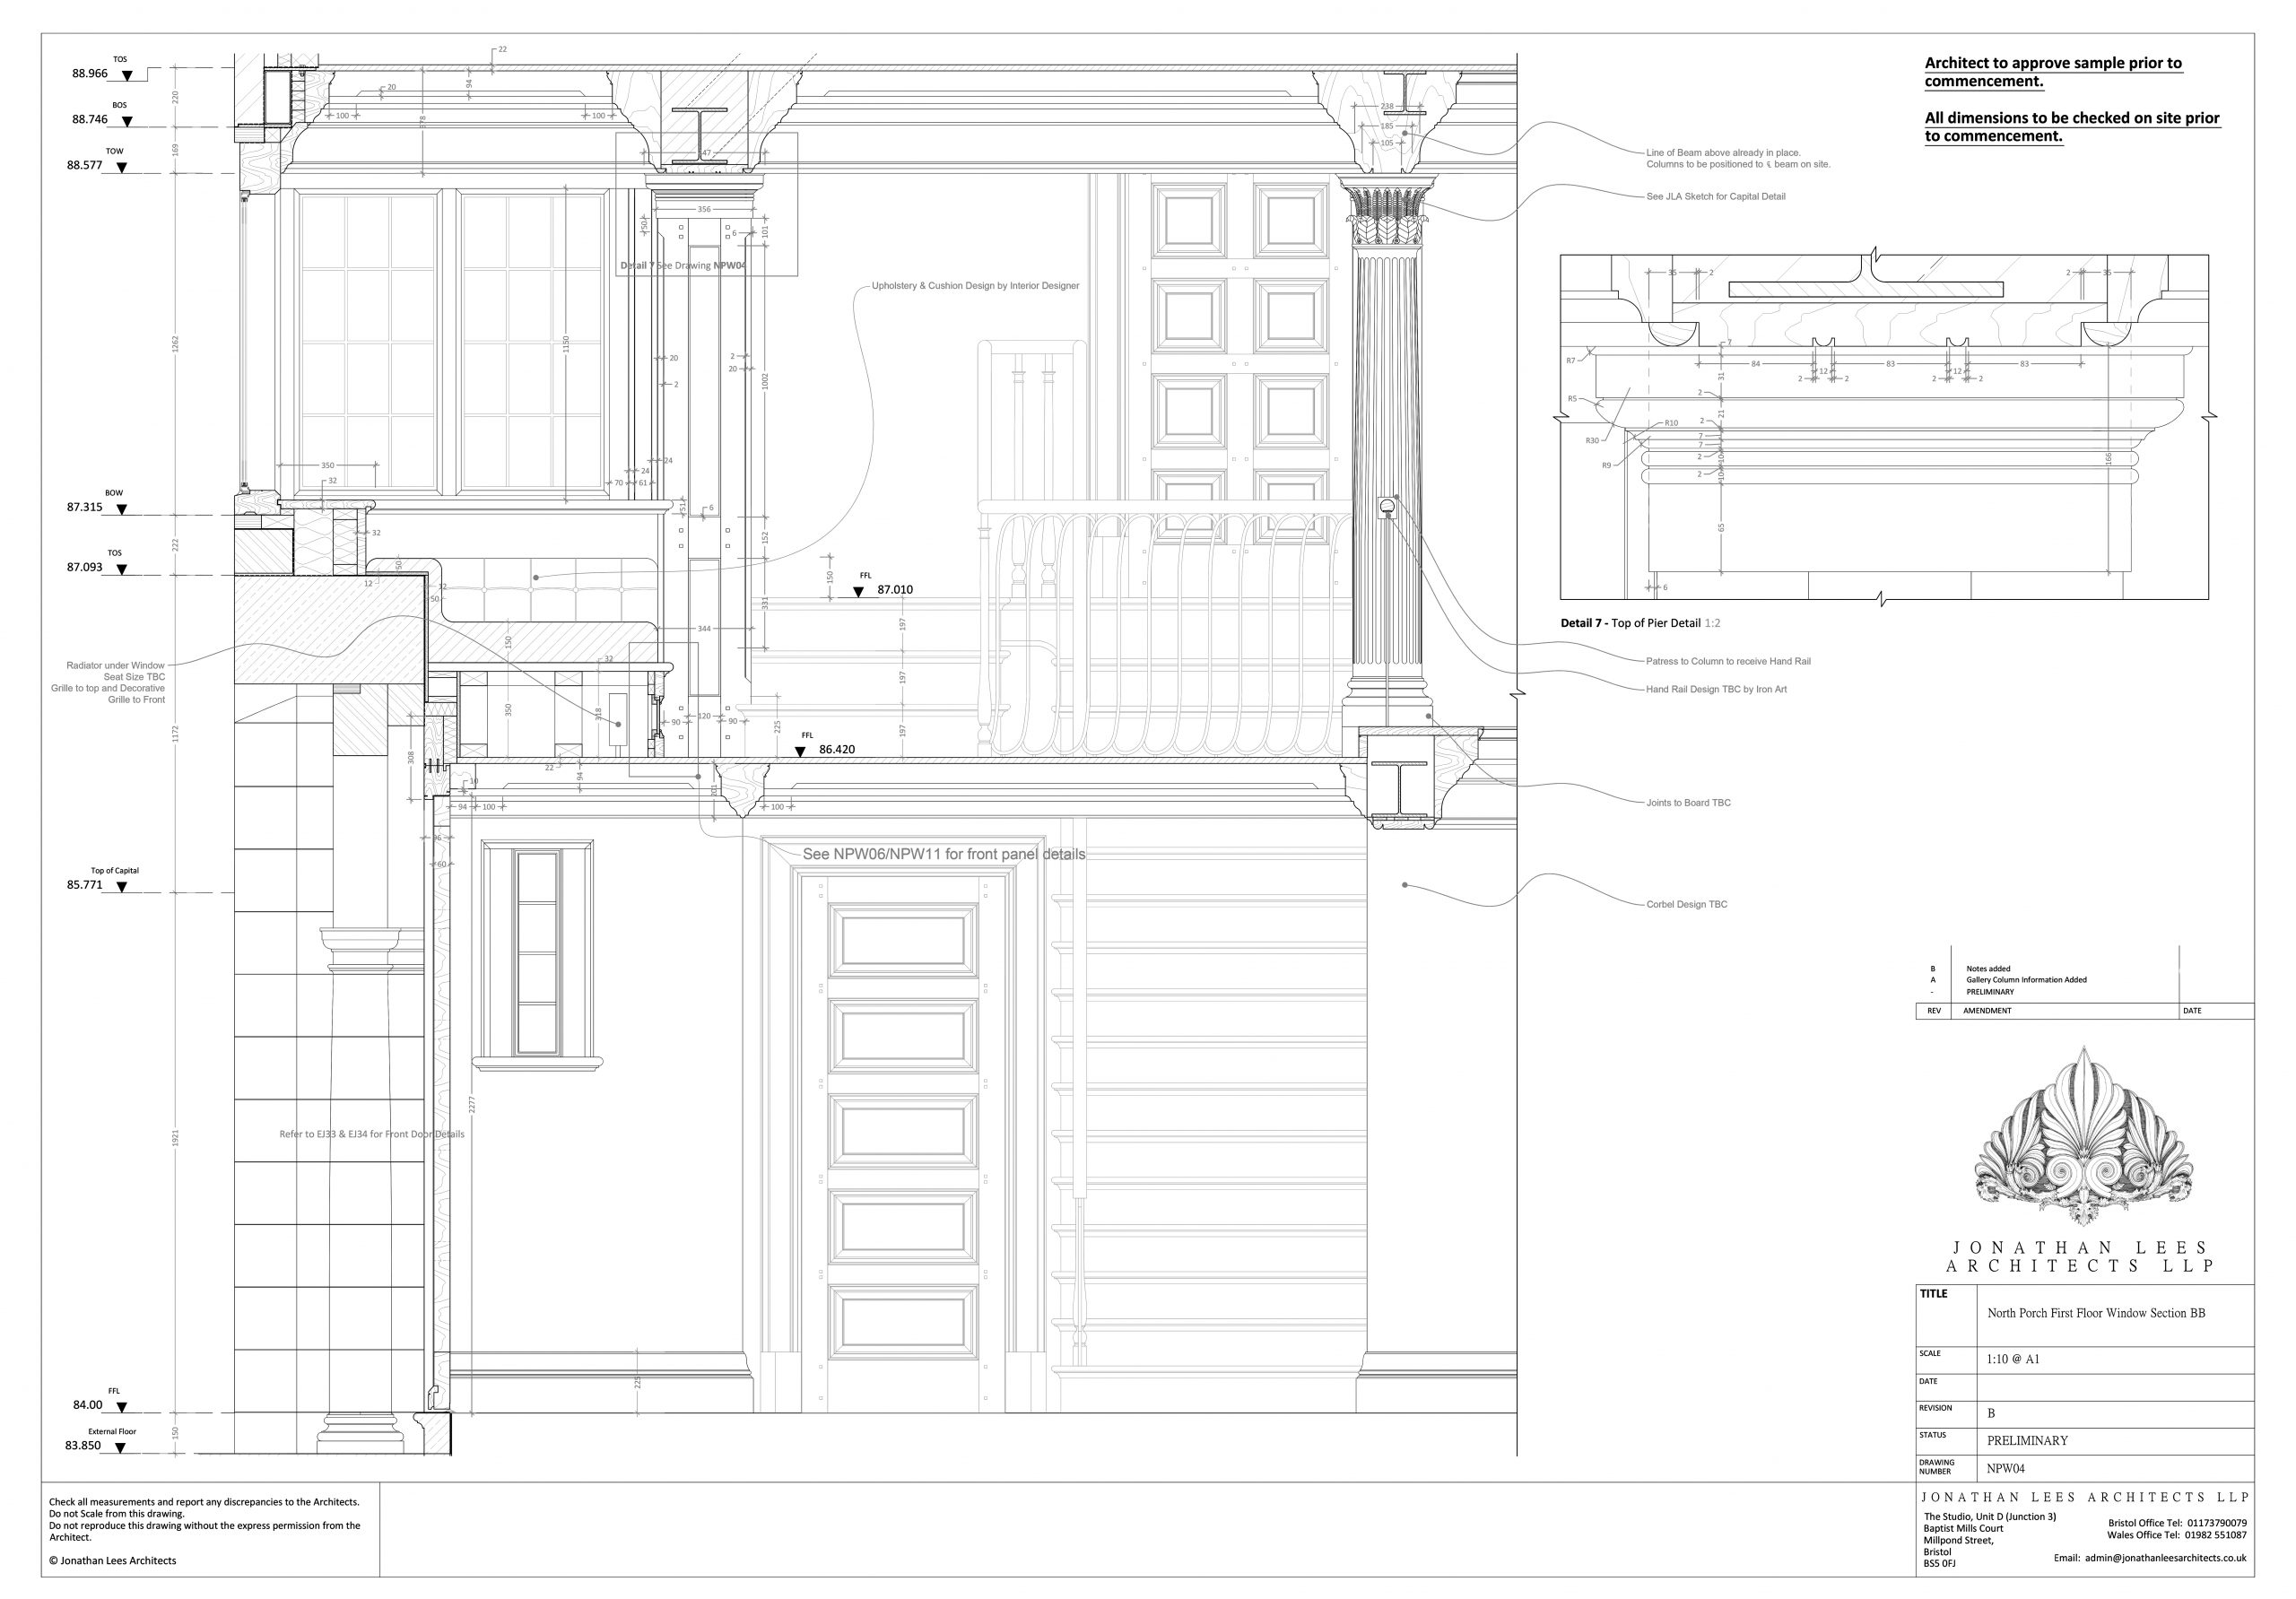 Staircase, hallway and gallery technical section drawing